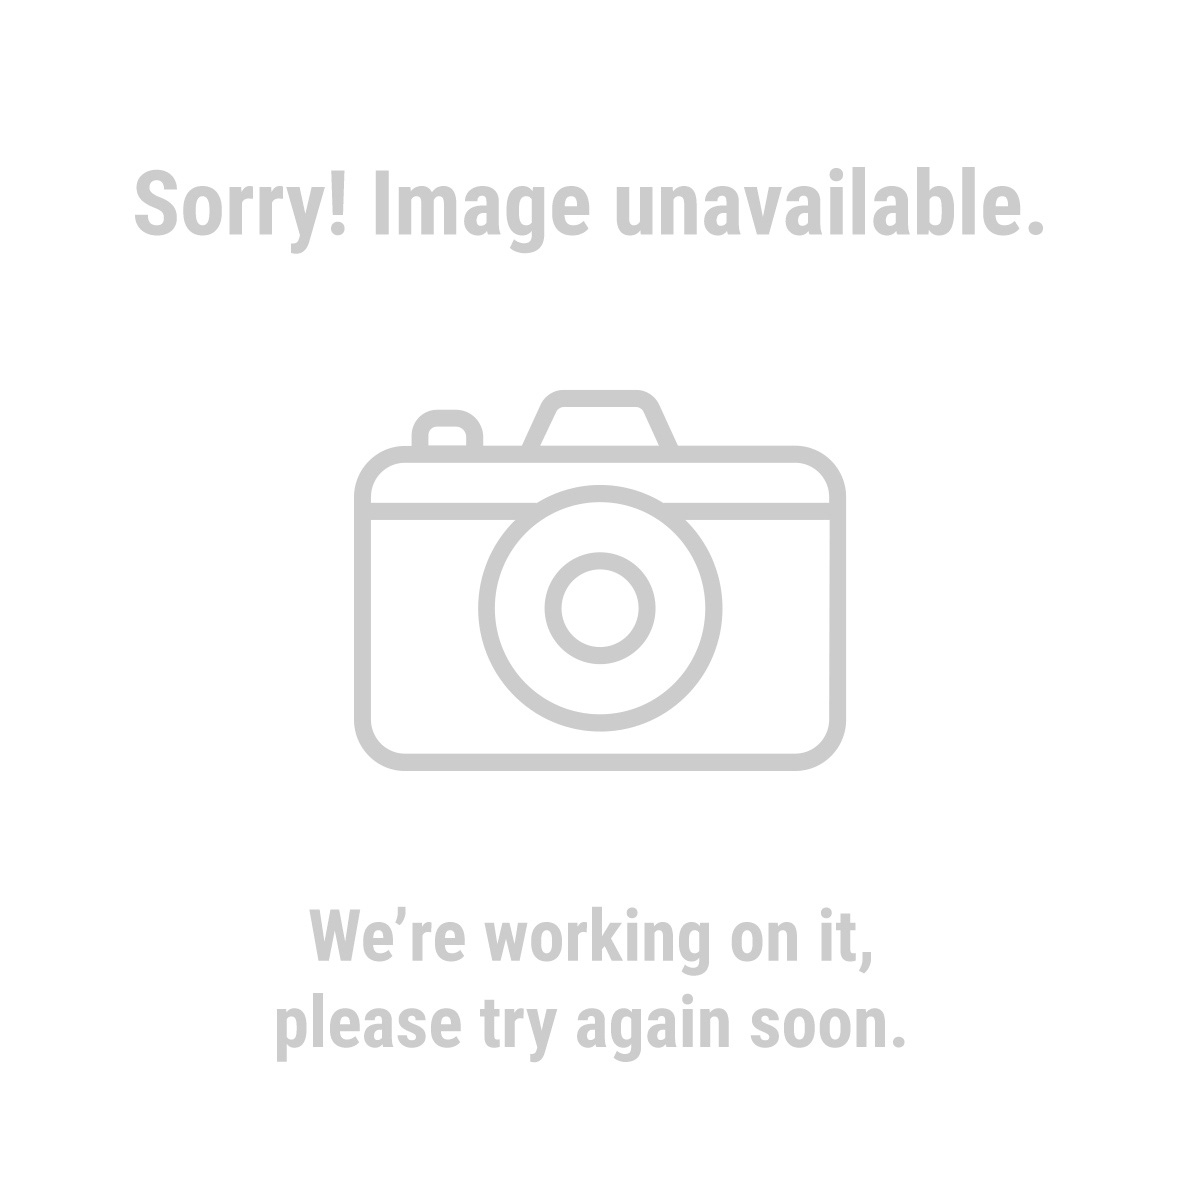 Central Pneumatic® 61689 2-in-1 Flooring Nailer/Stapler